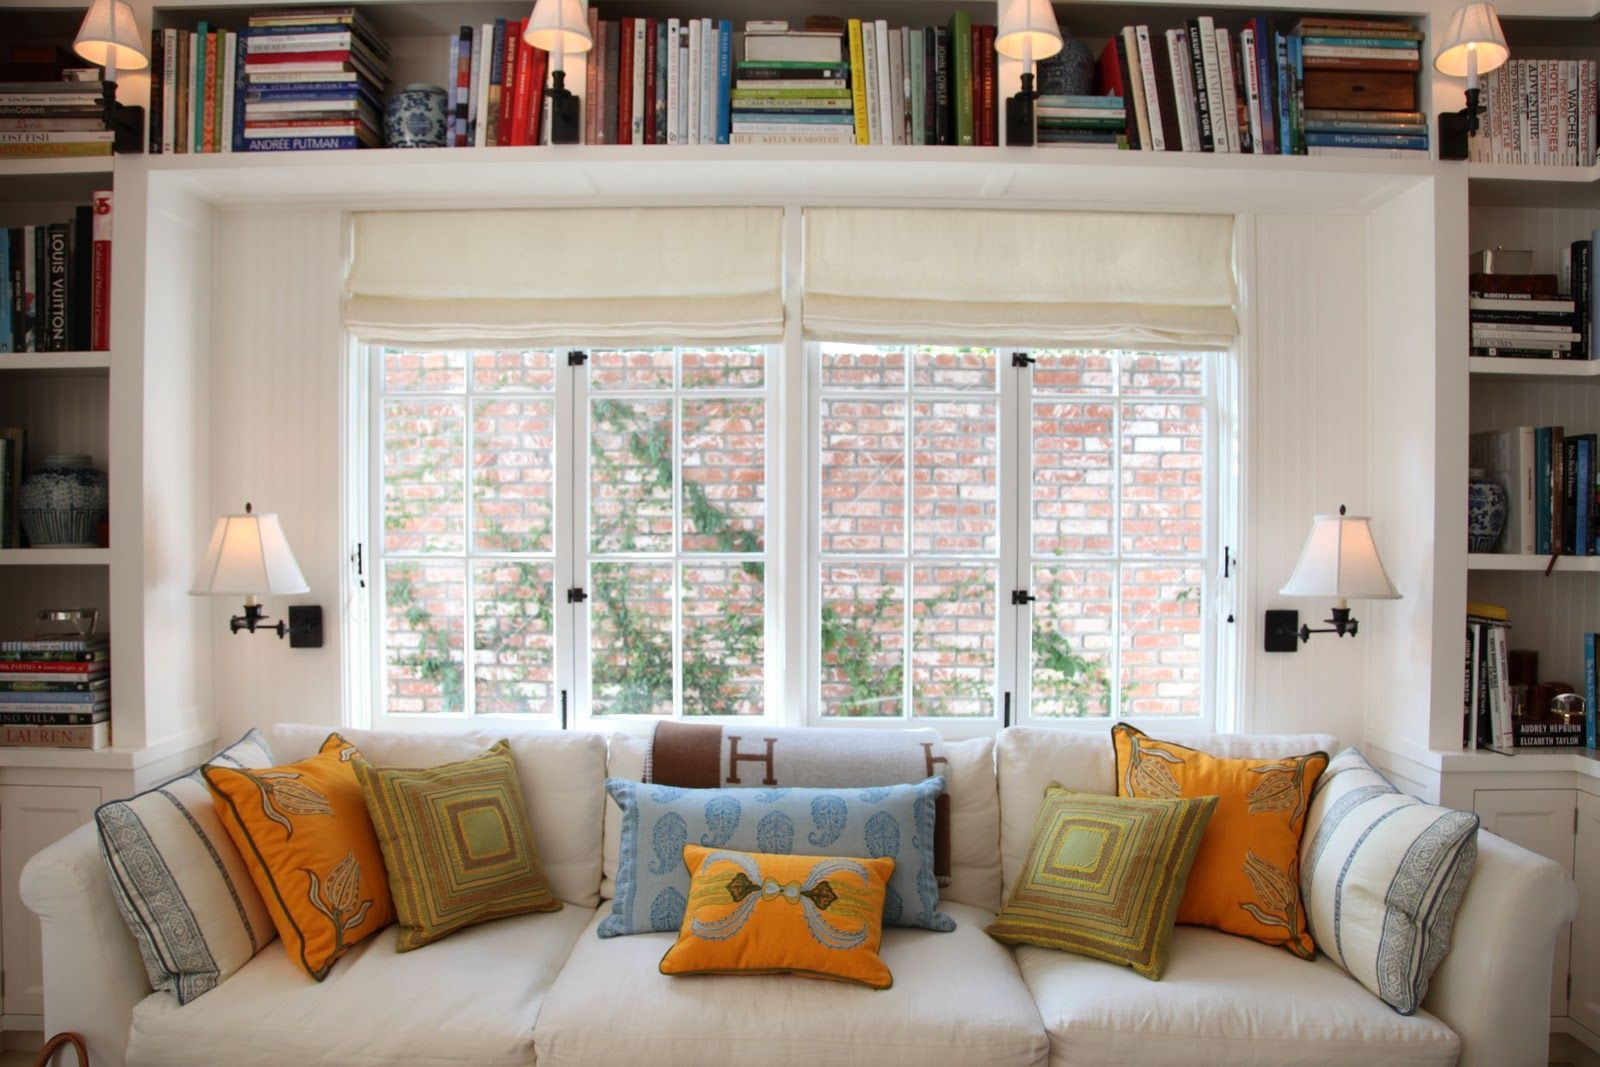 Instead Window Seat Free Standing Couch Between Bookcases Habitually Chic Hollywood